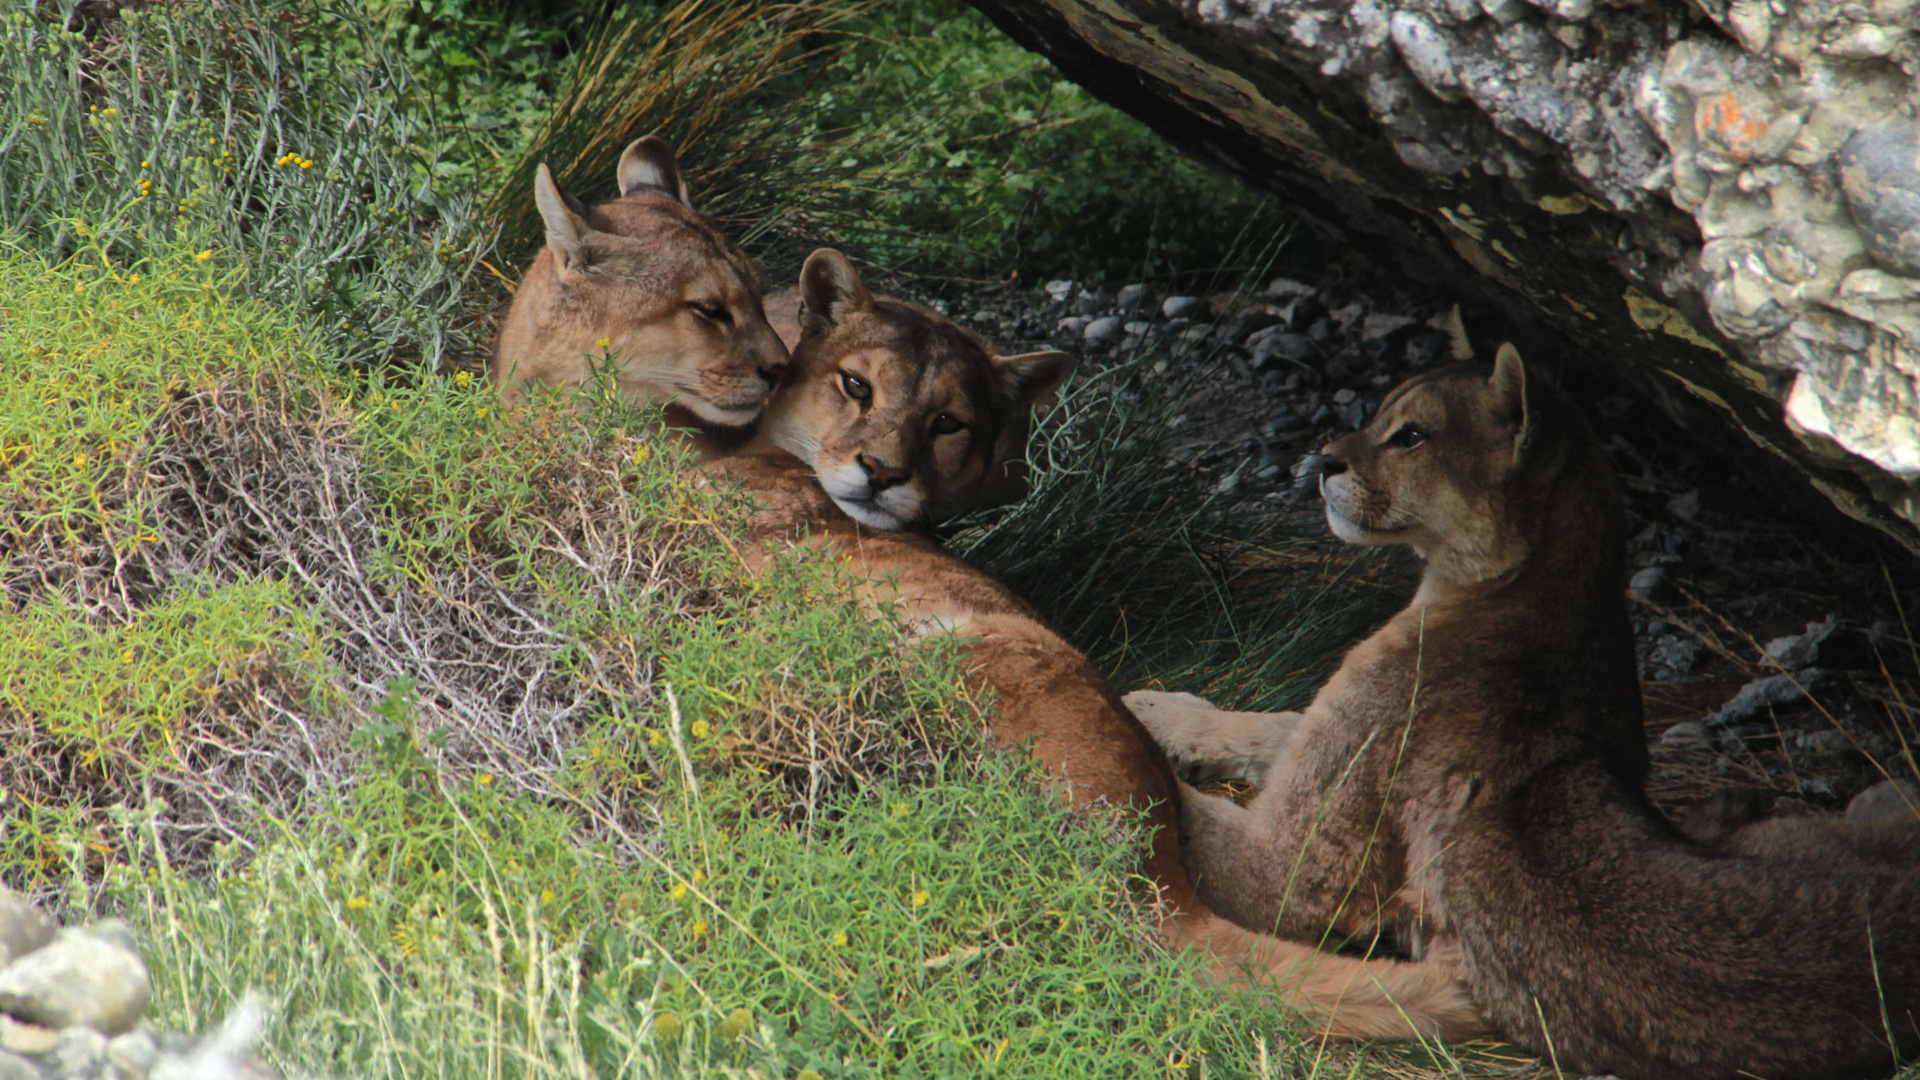 Chile - puma family in Patagonia